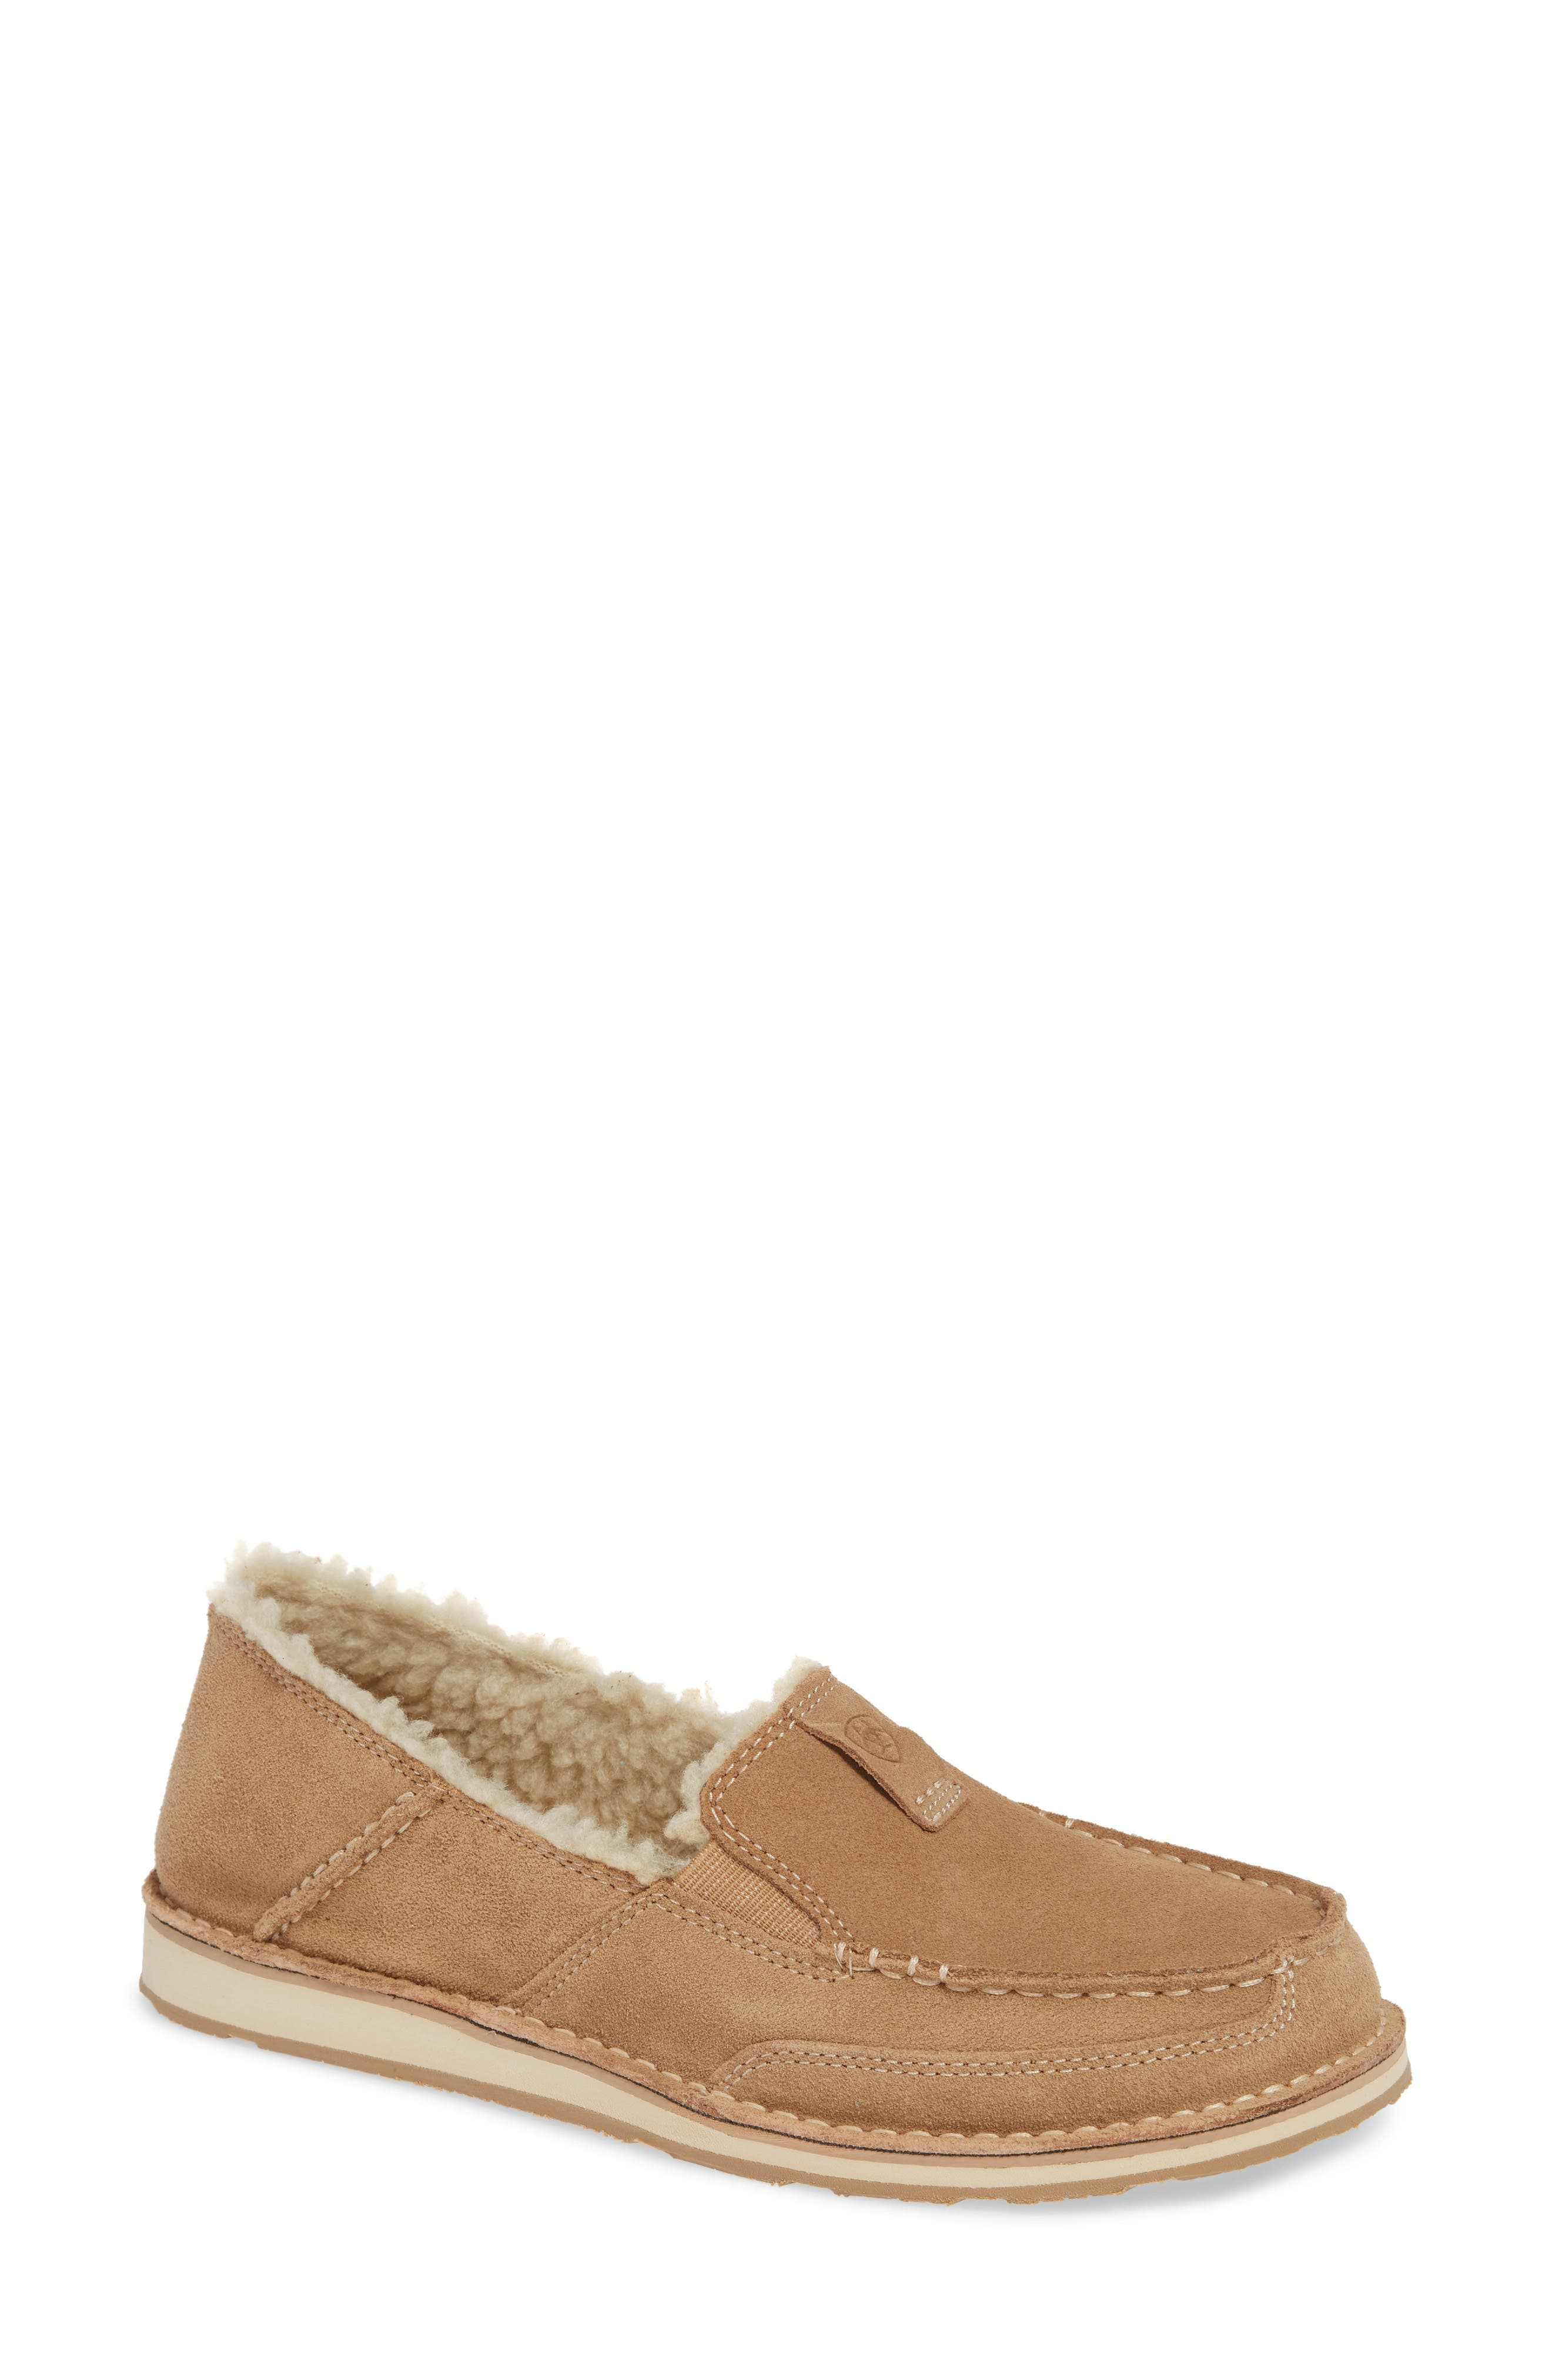 Cruiser Slip-On Loafer in Light Tan Suede Leather